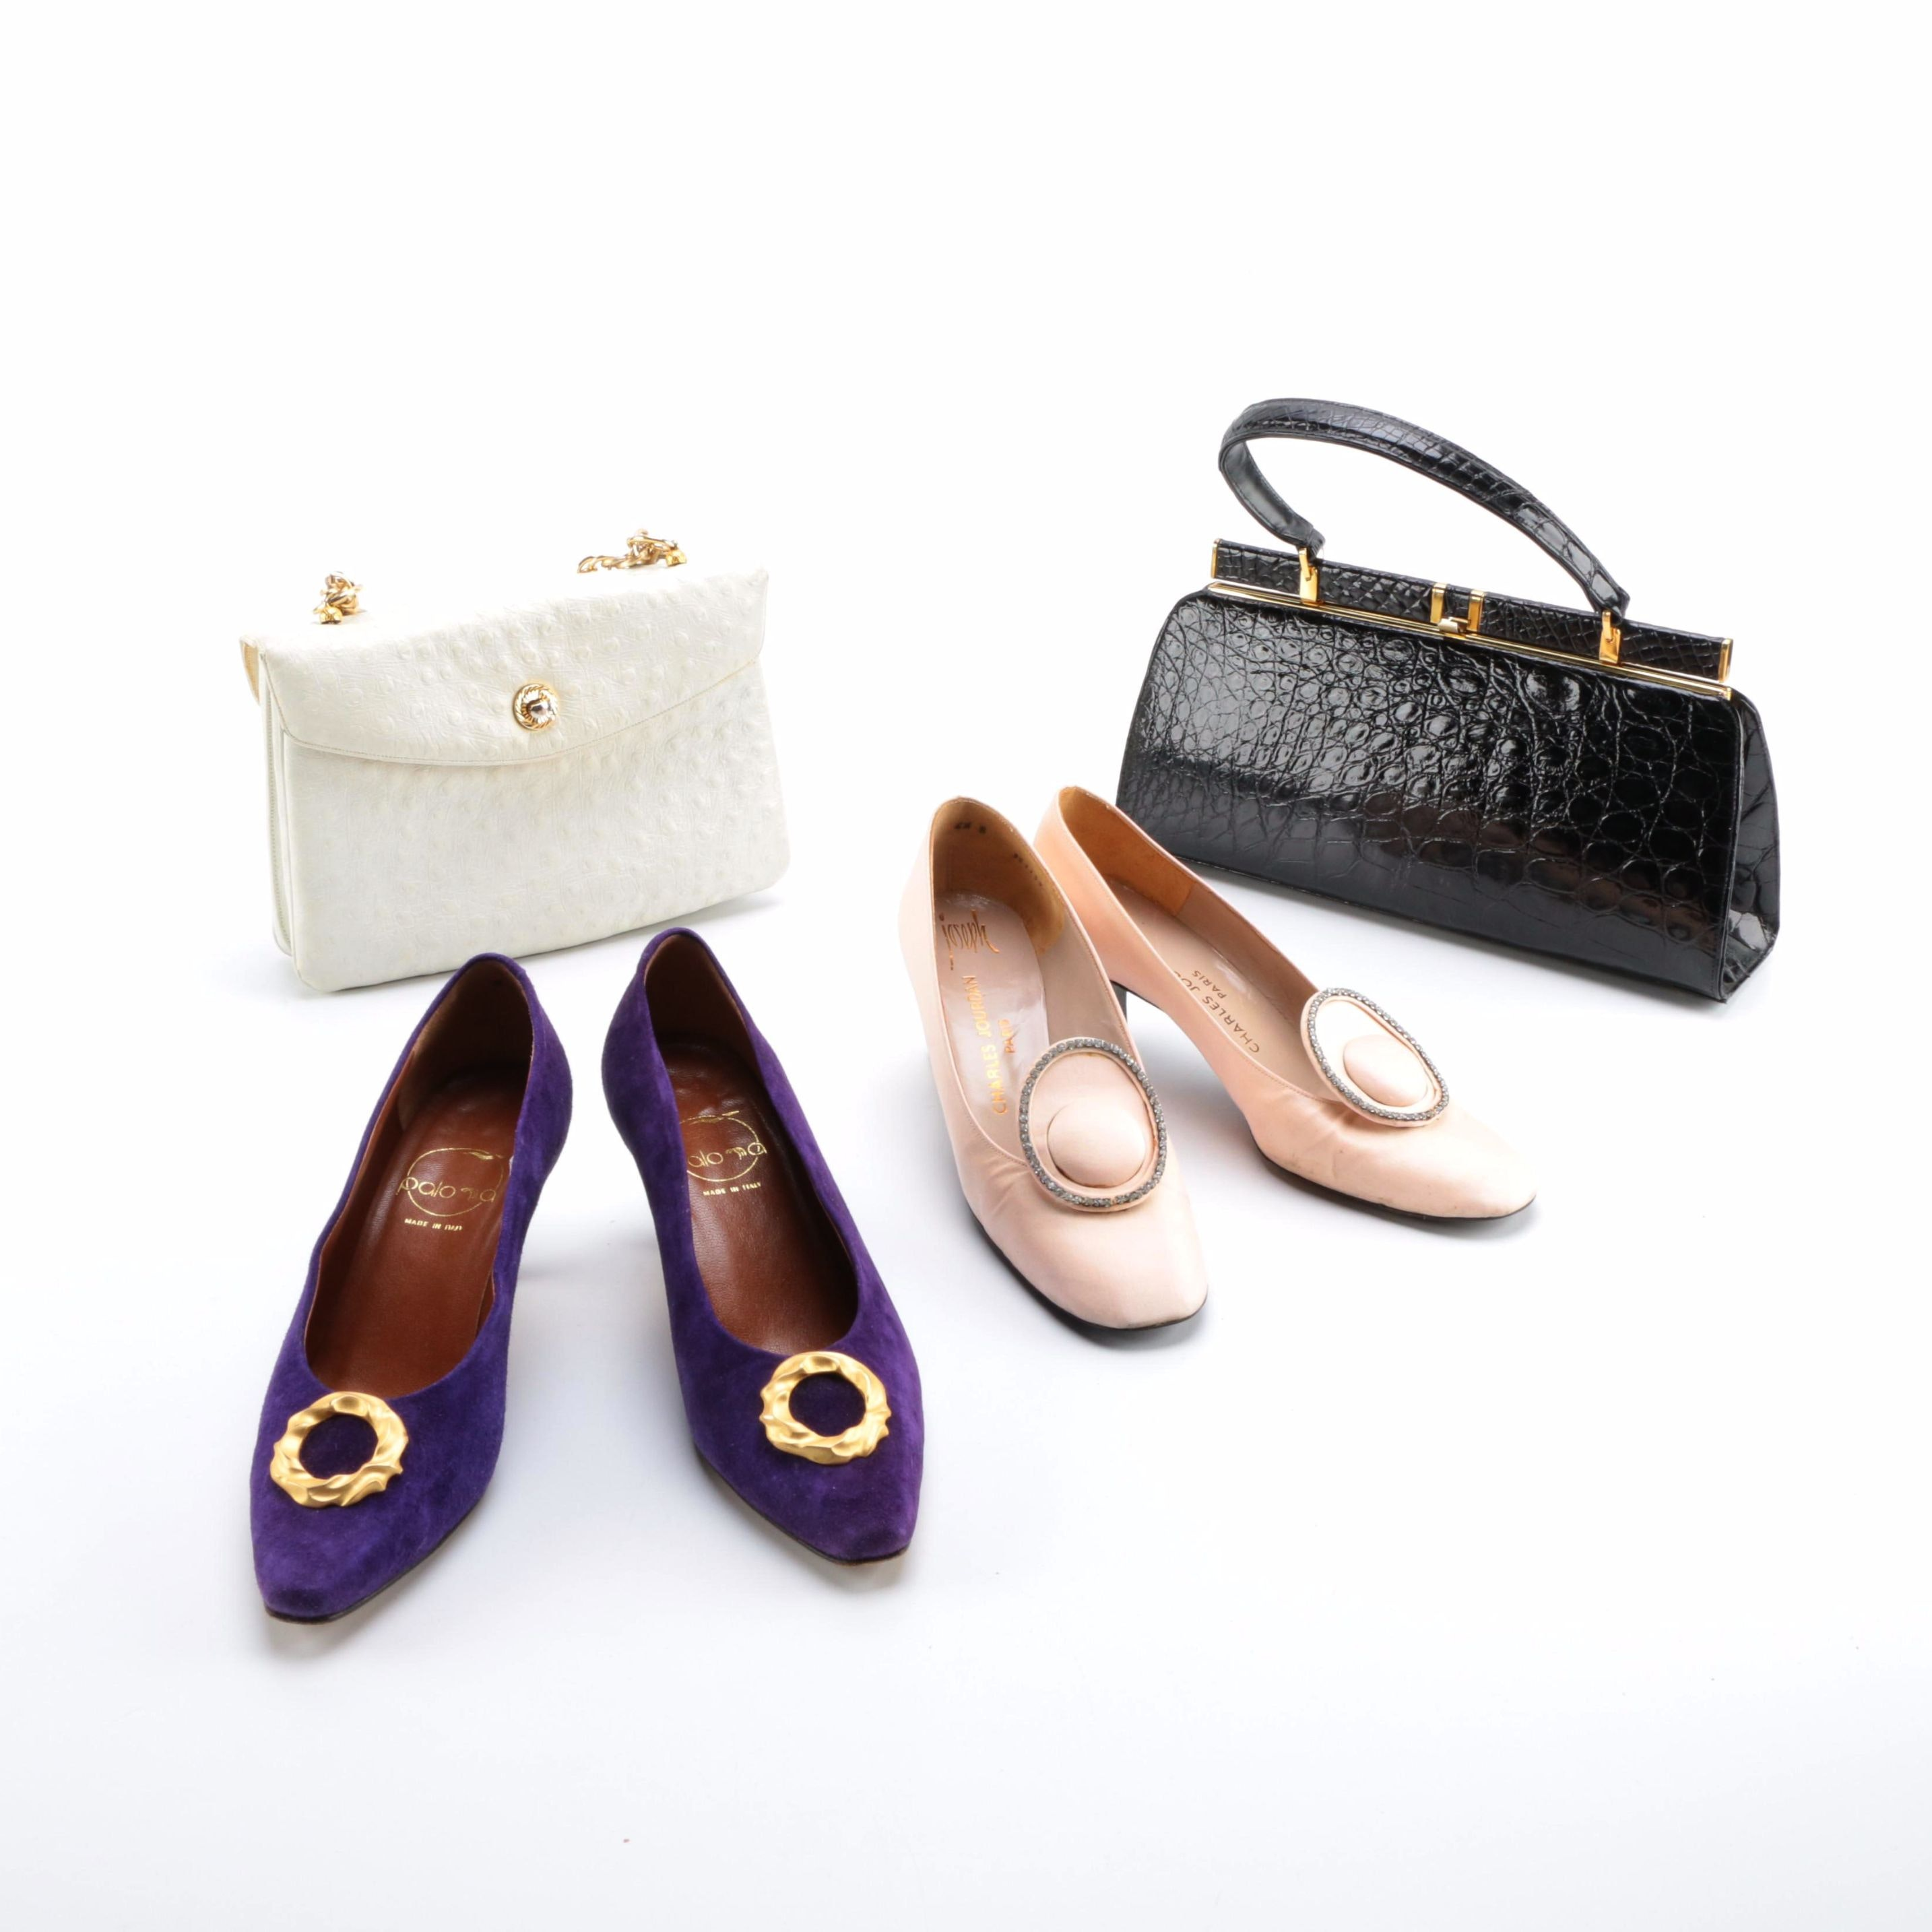 Vintage Shoe and Handbag Collection